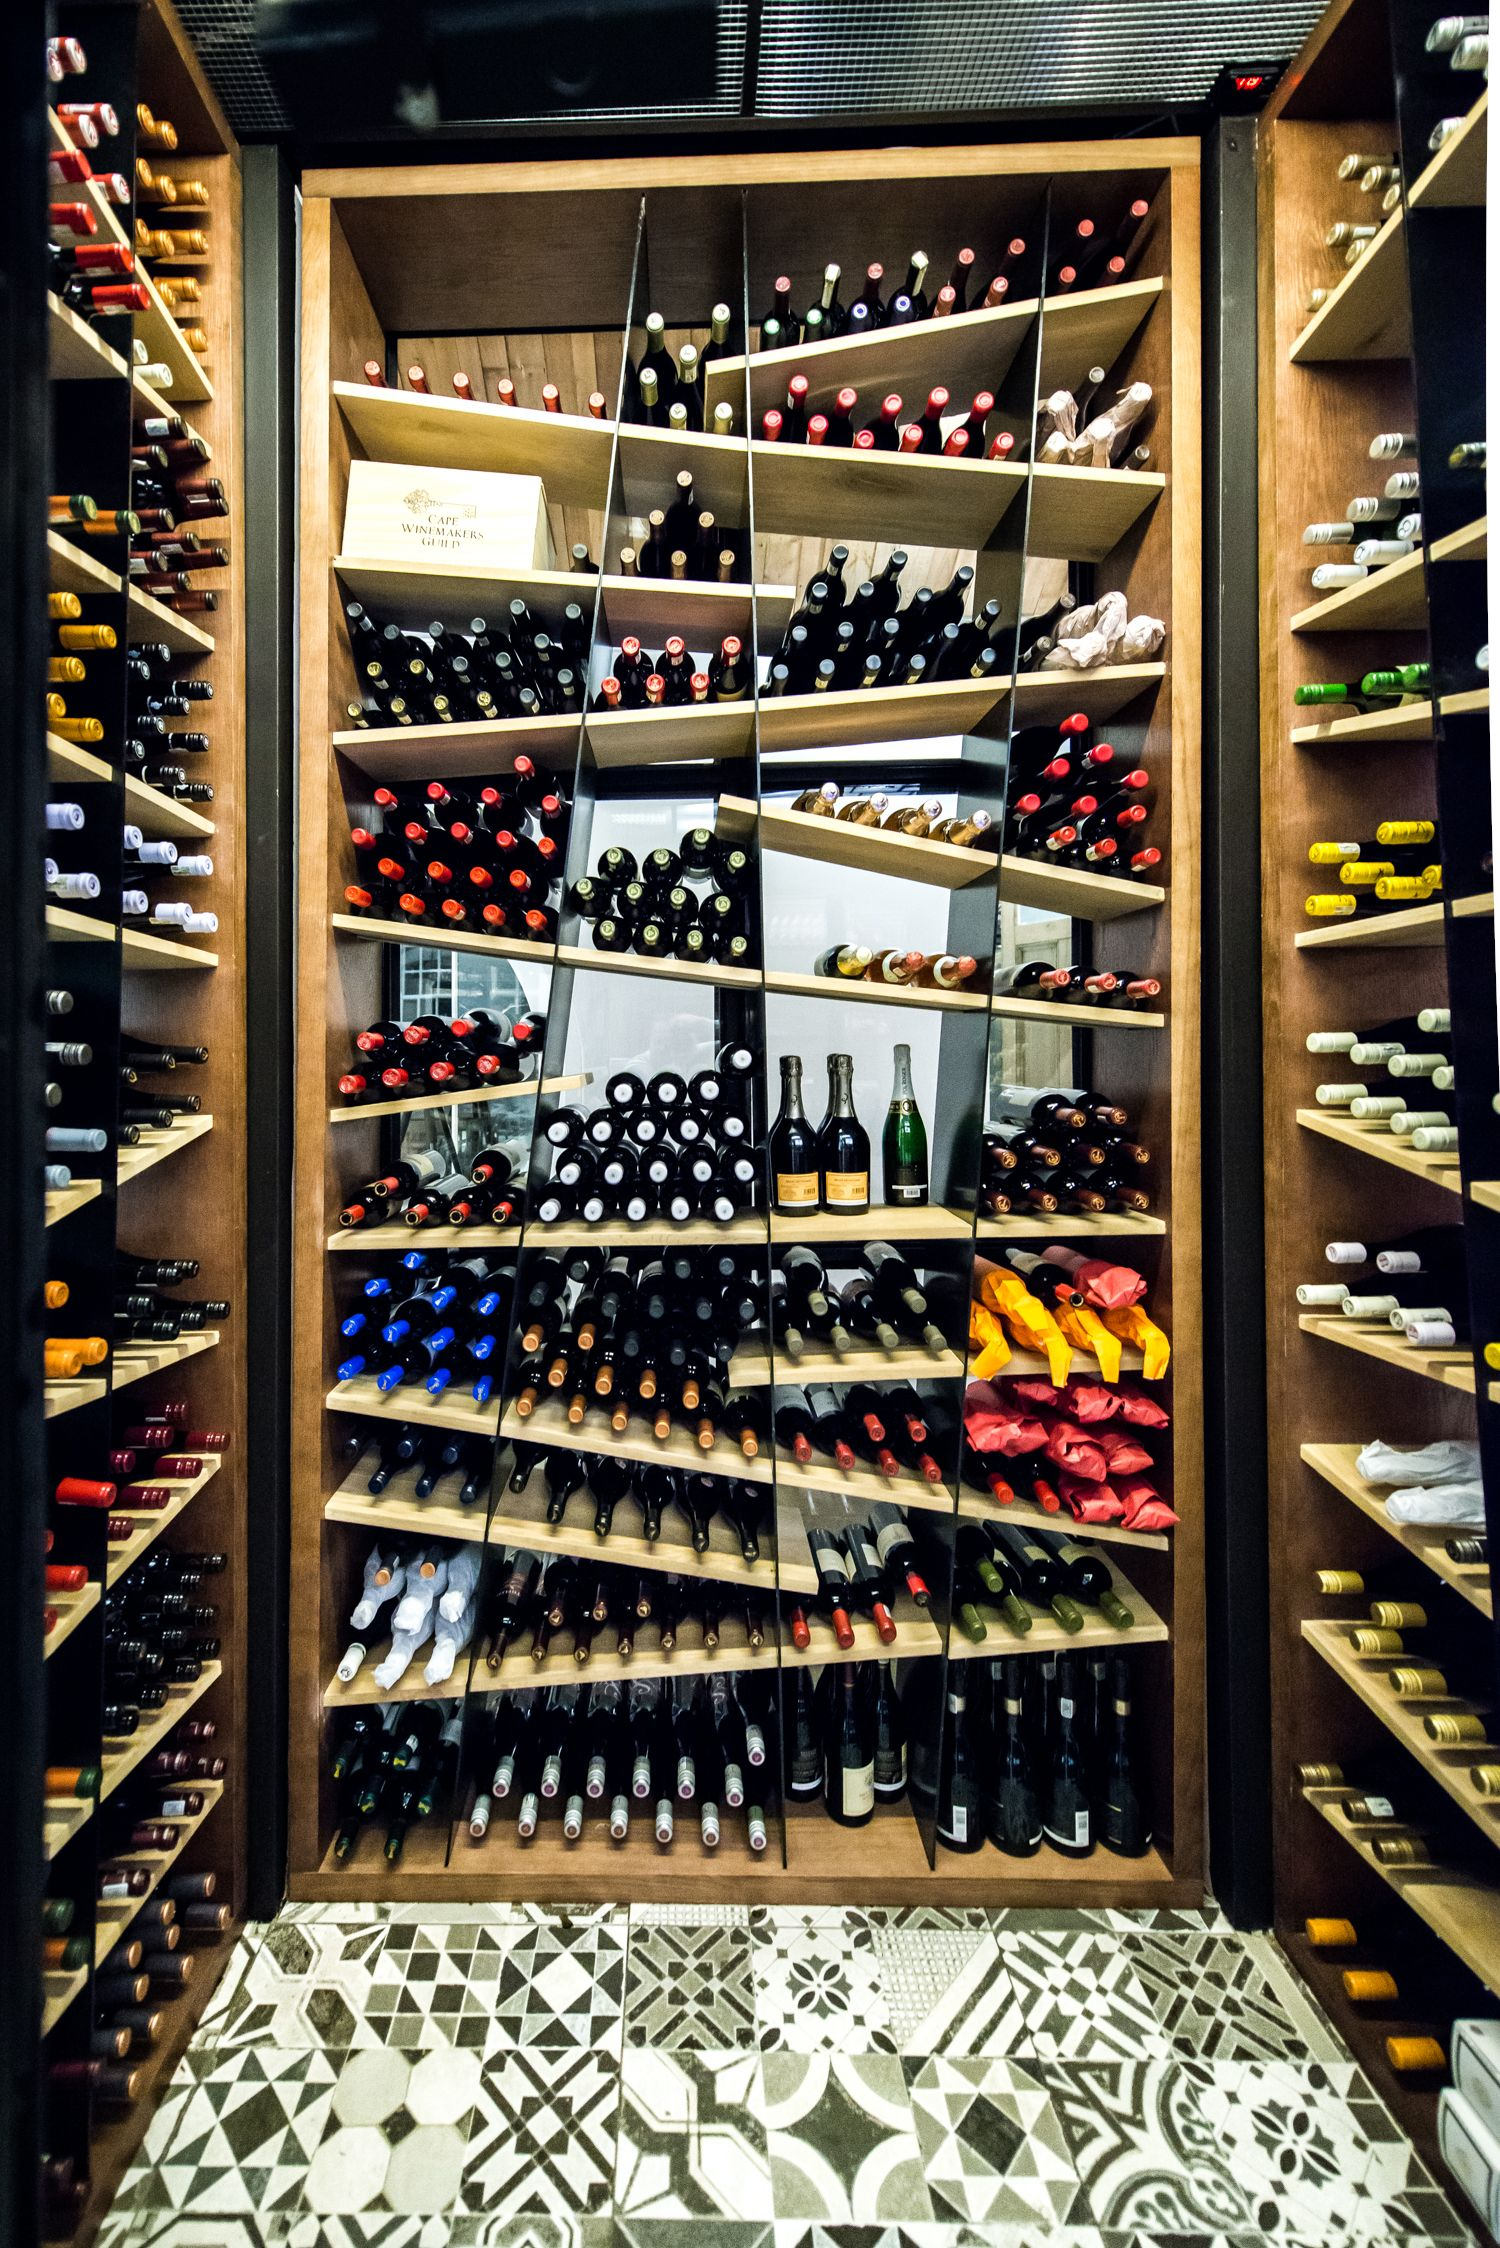 Tramshed Shoreditch: Wine Display Image By Quintin Gilman On Wine